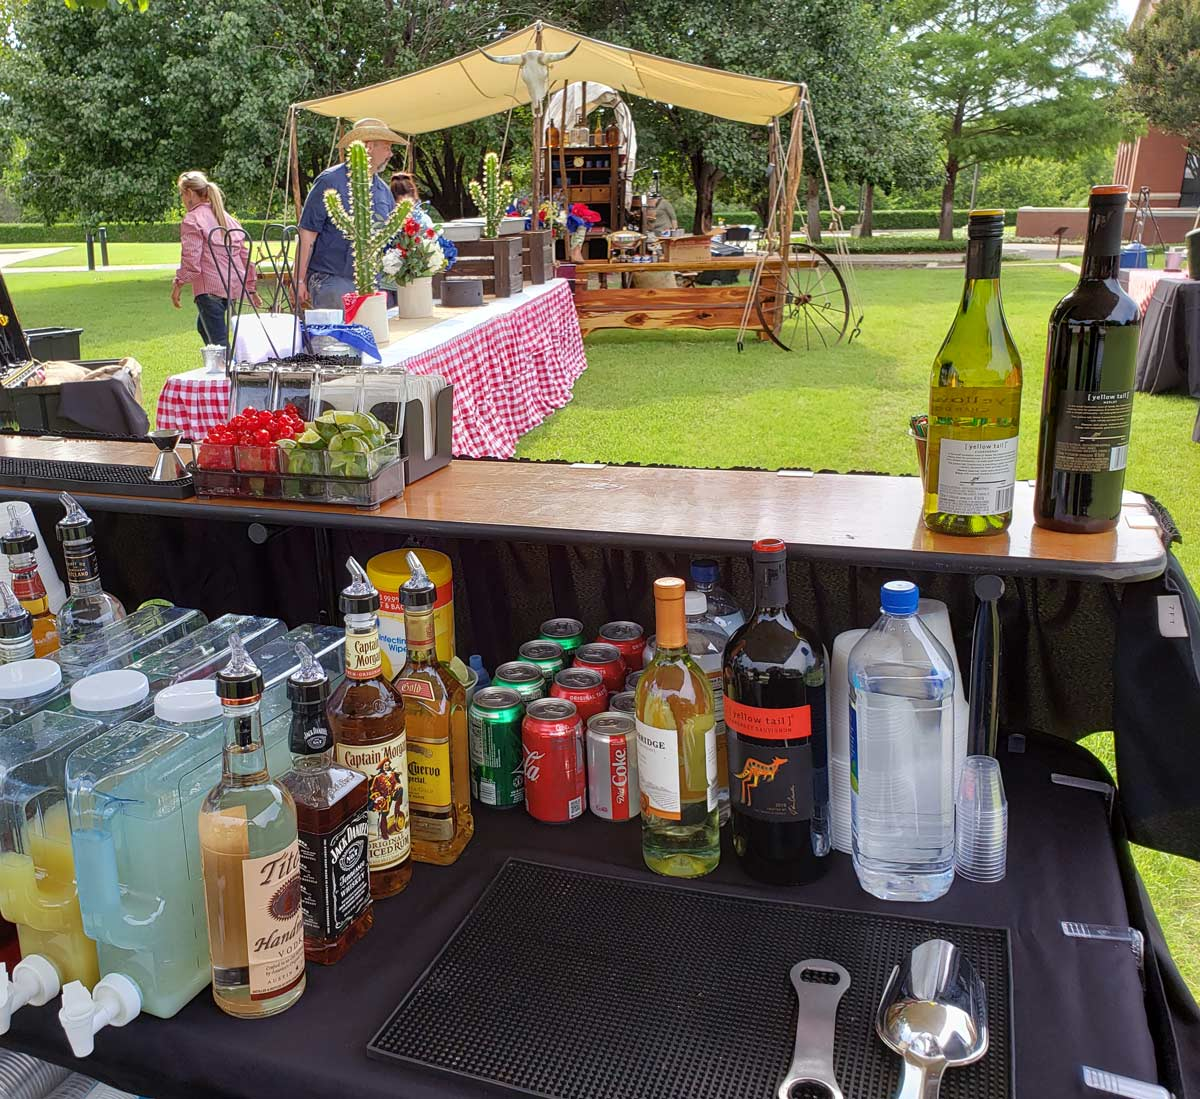 Party Linens and Supplies North Texas Wedding and Event Services at an outdoor western theme event